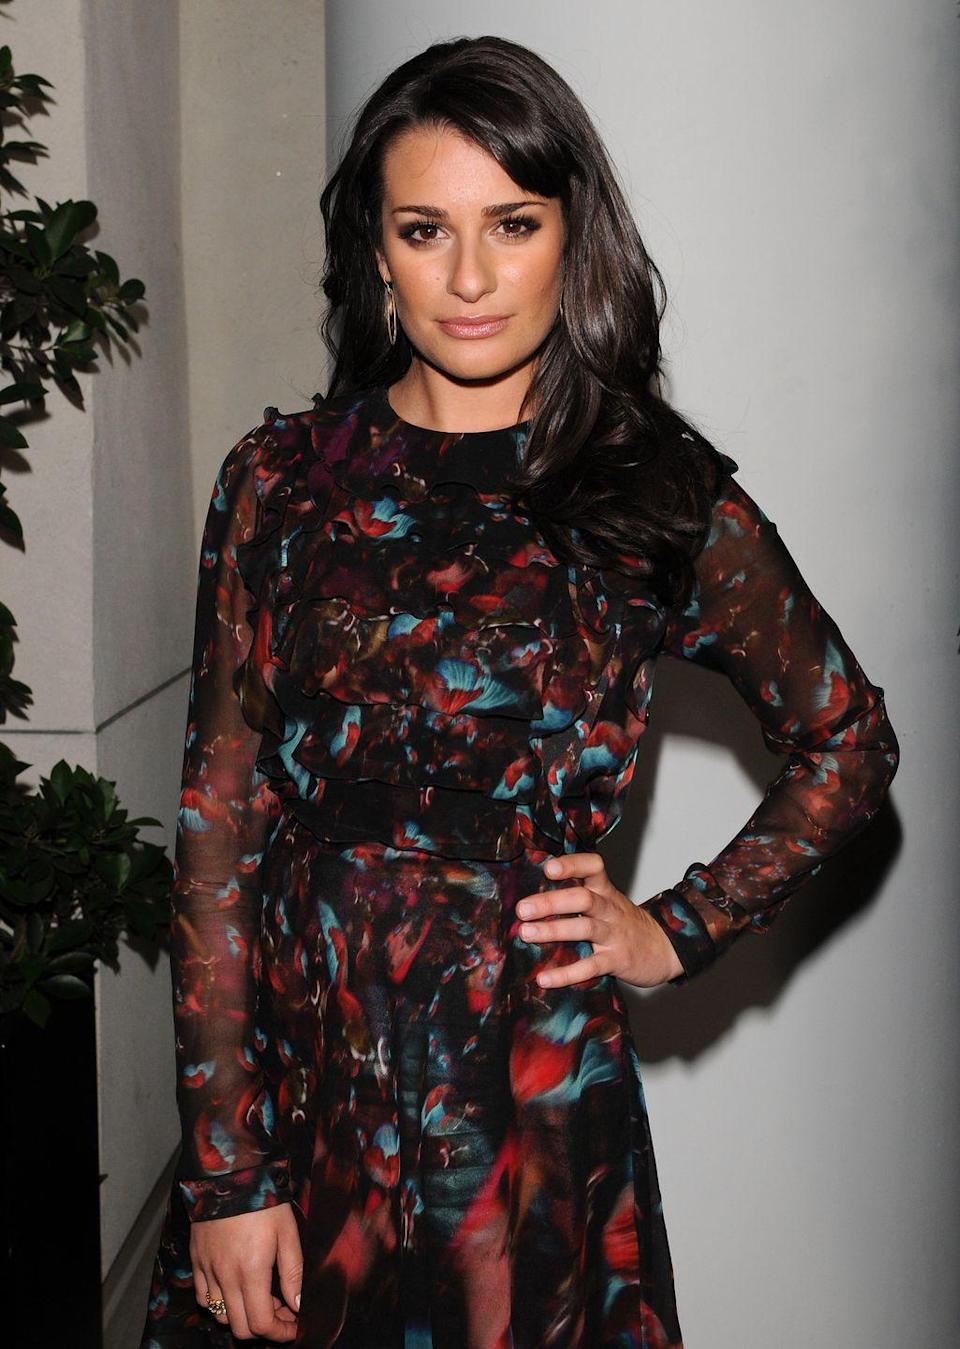 <p><em>Glee </em>star Lea Michele made an appearance at a <em>TV Guide Magazine </em>party in a flowy, '70s-inspired dress.</p>